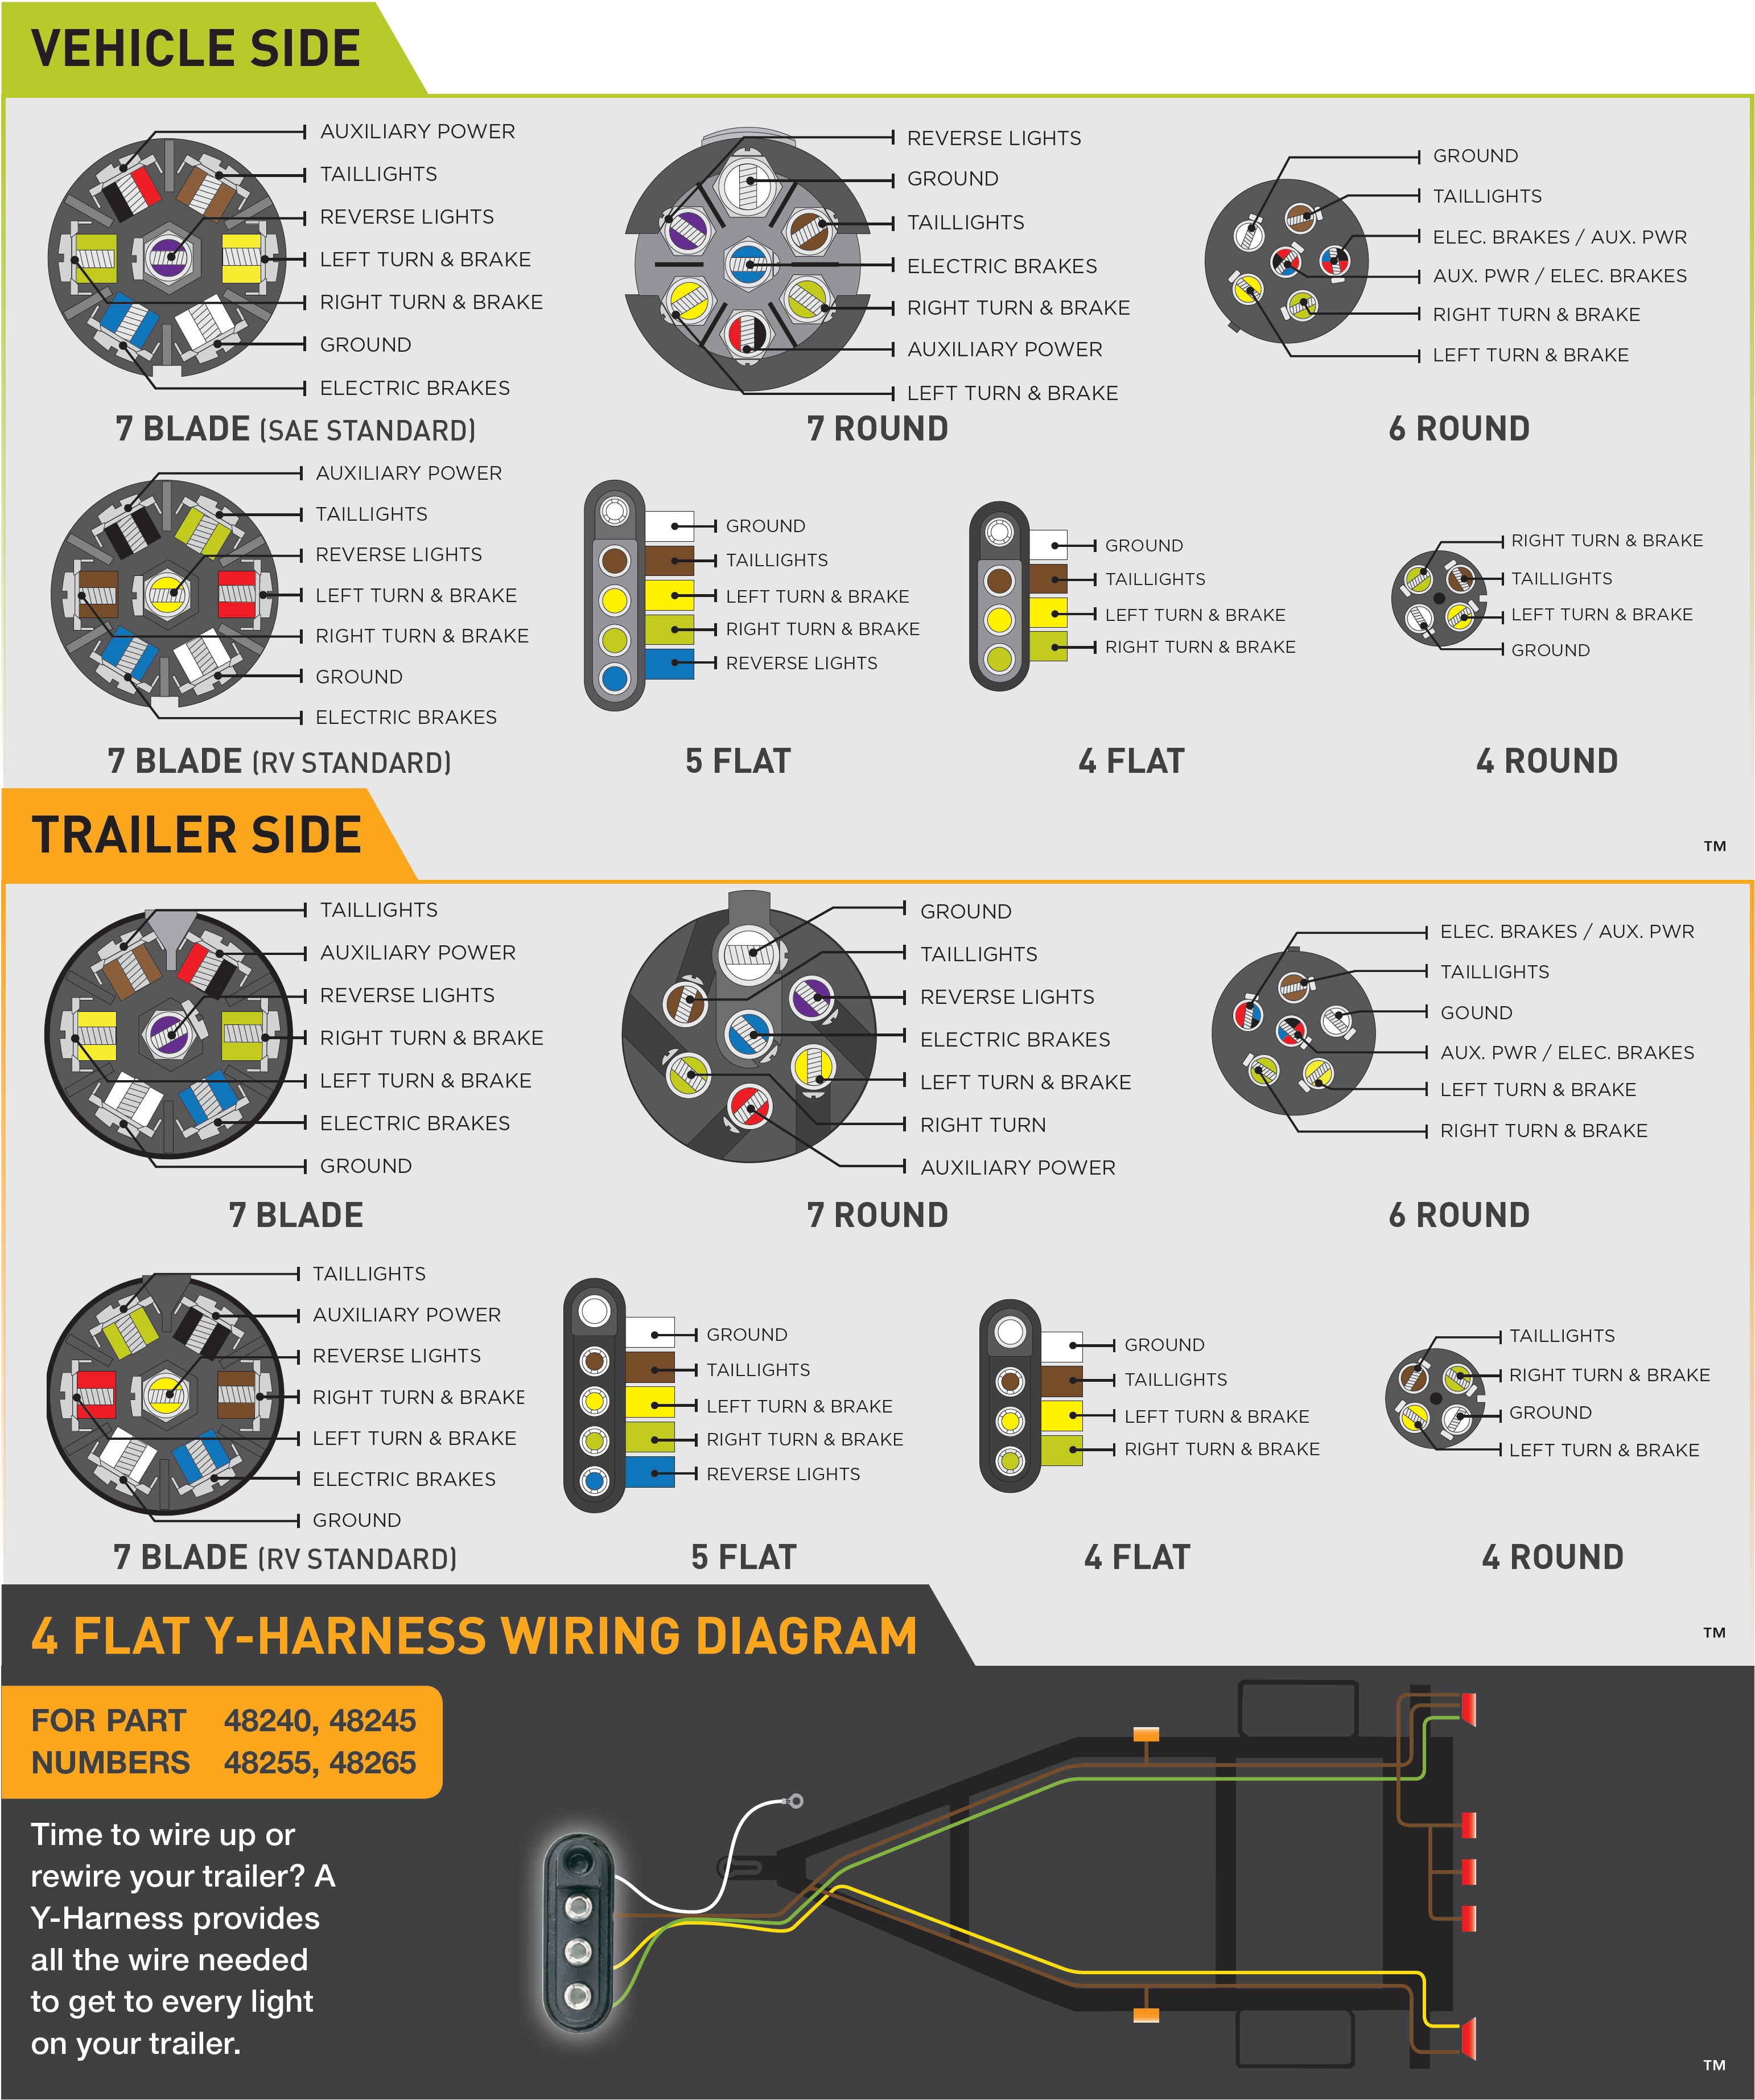 Wiring Guides - Trailer Adapter Wiring Diagram